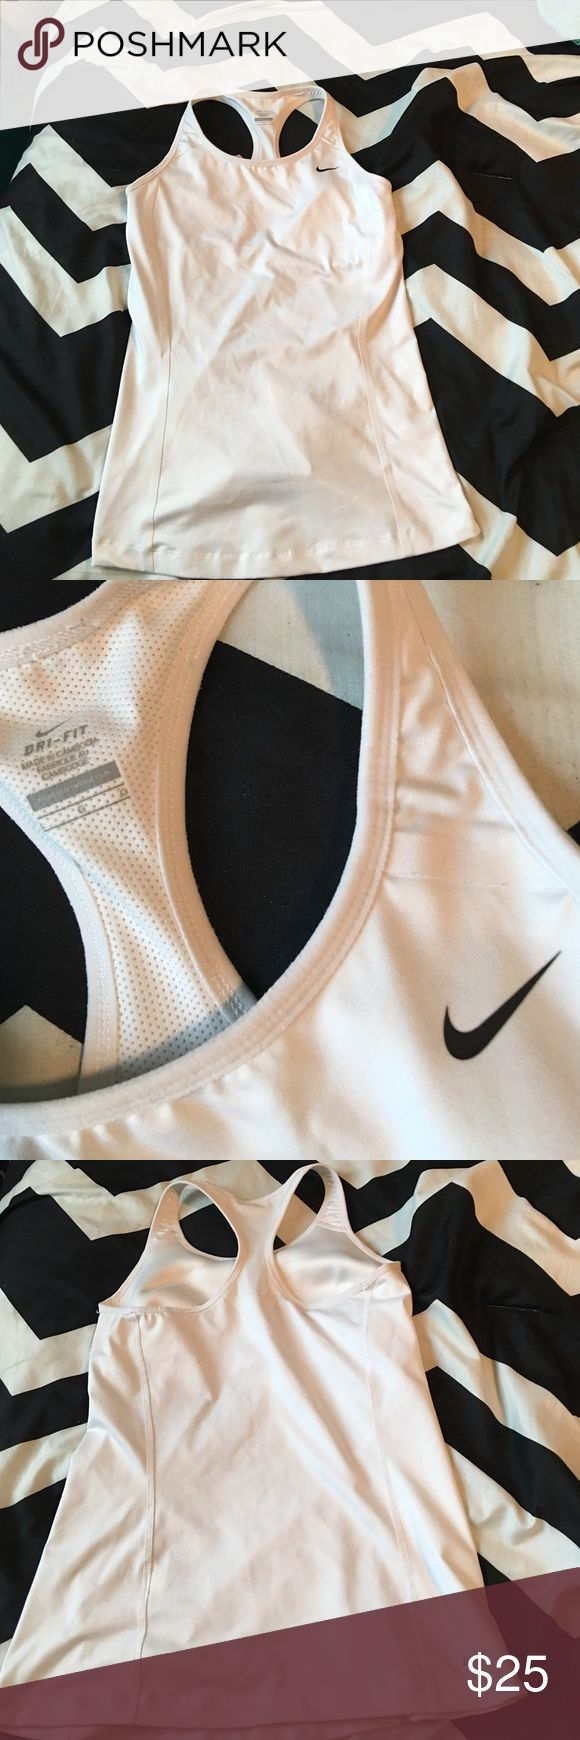 Nike top Dri fit material with built in bra perfect condition! Please make offers Nike Tops Muscle Tees